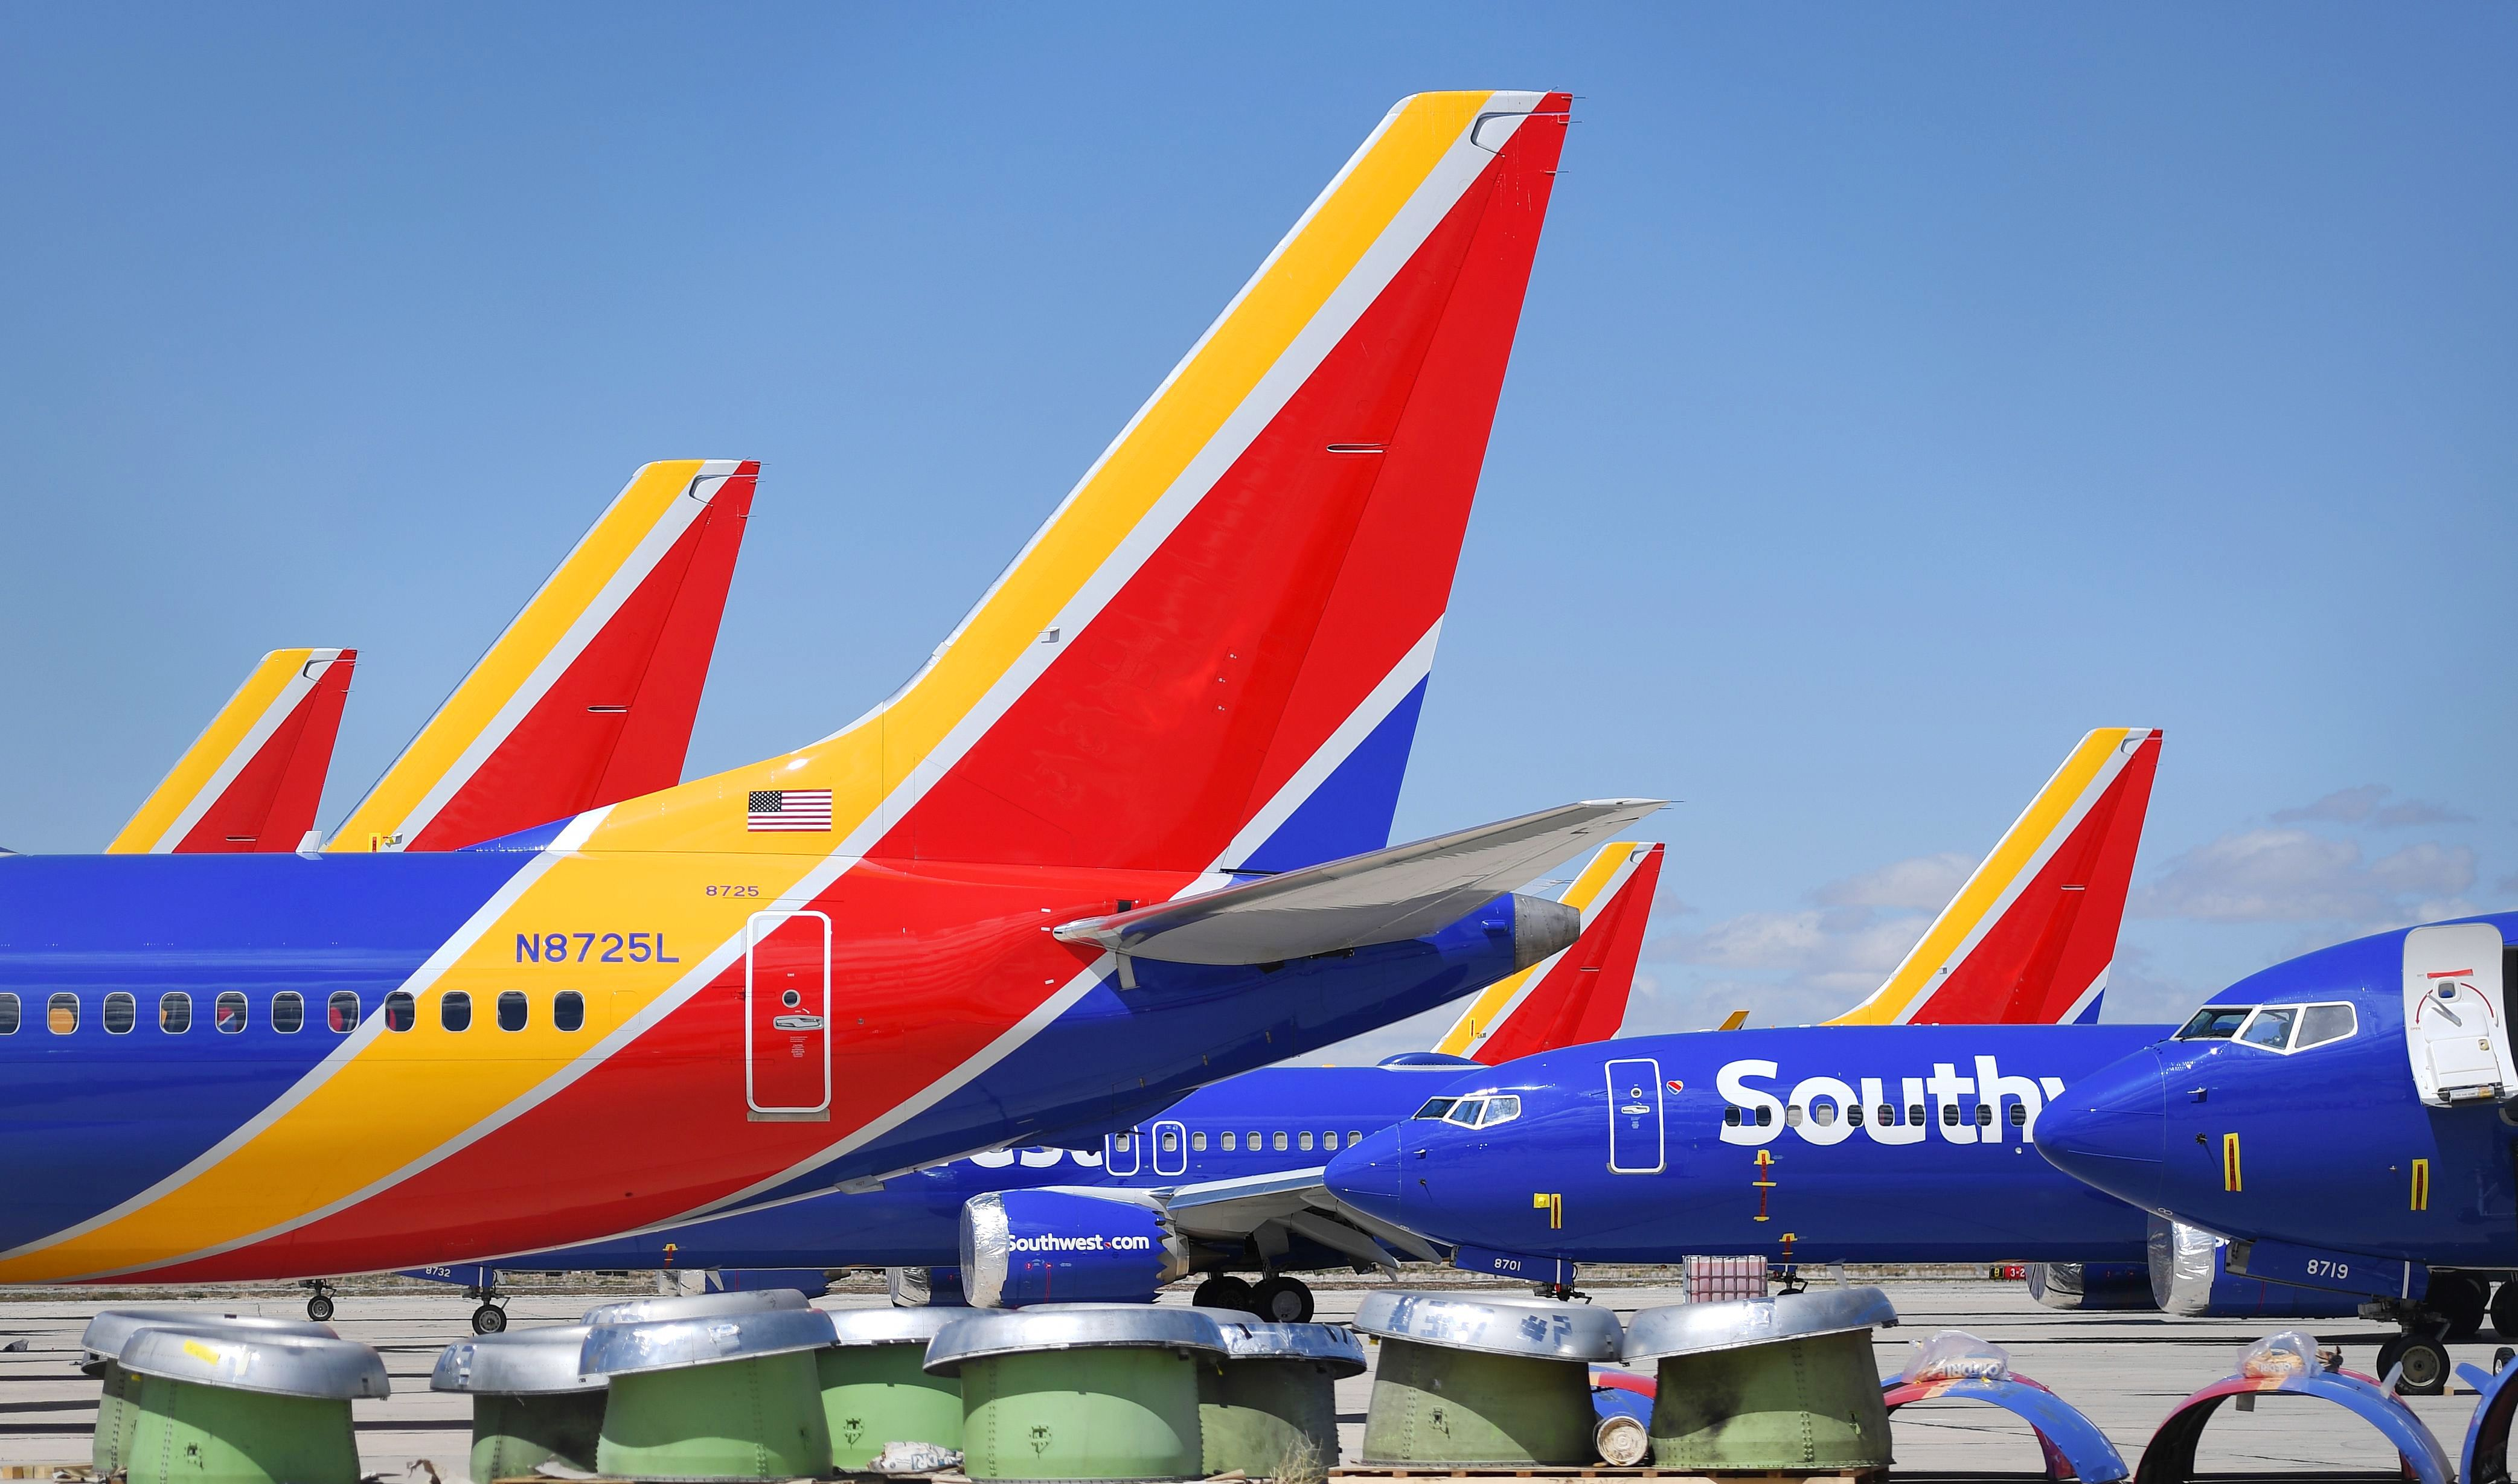 Southwest Airlines pilots don't expect Boeing 737 Max back until February